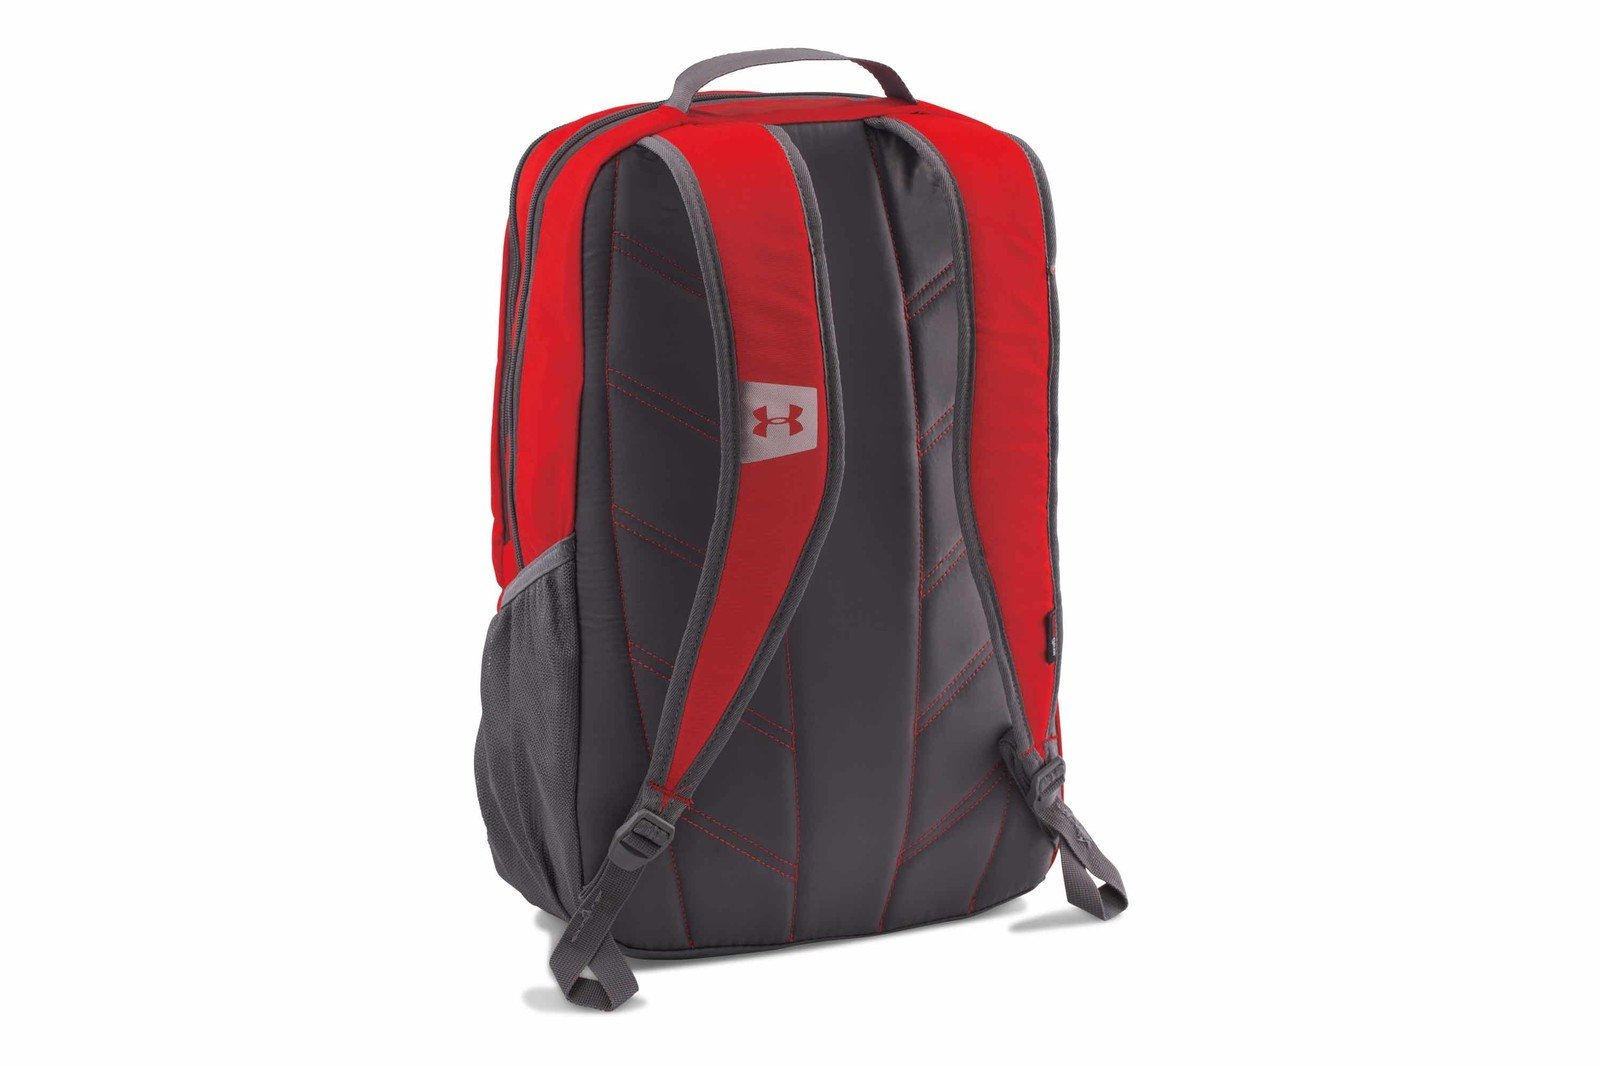 2c4df4fad830 Details about Under Armour Mens Hustle LDWR Backpack Accessory Sack  Training Sports